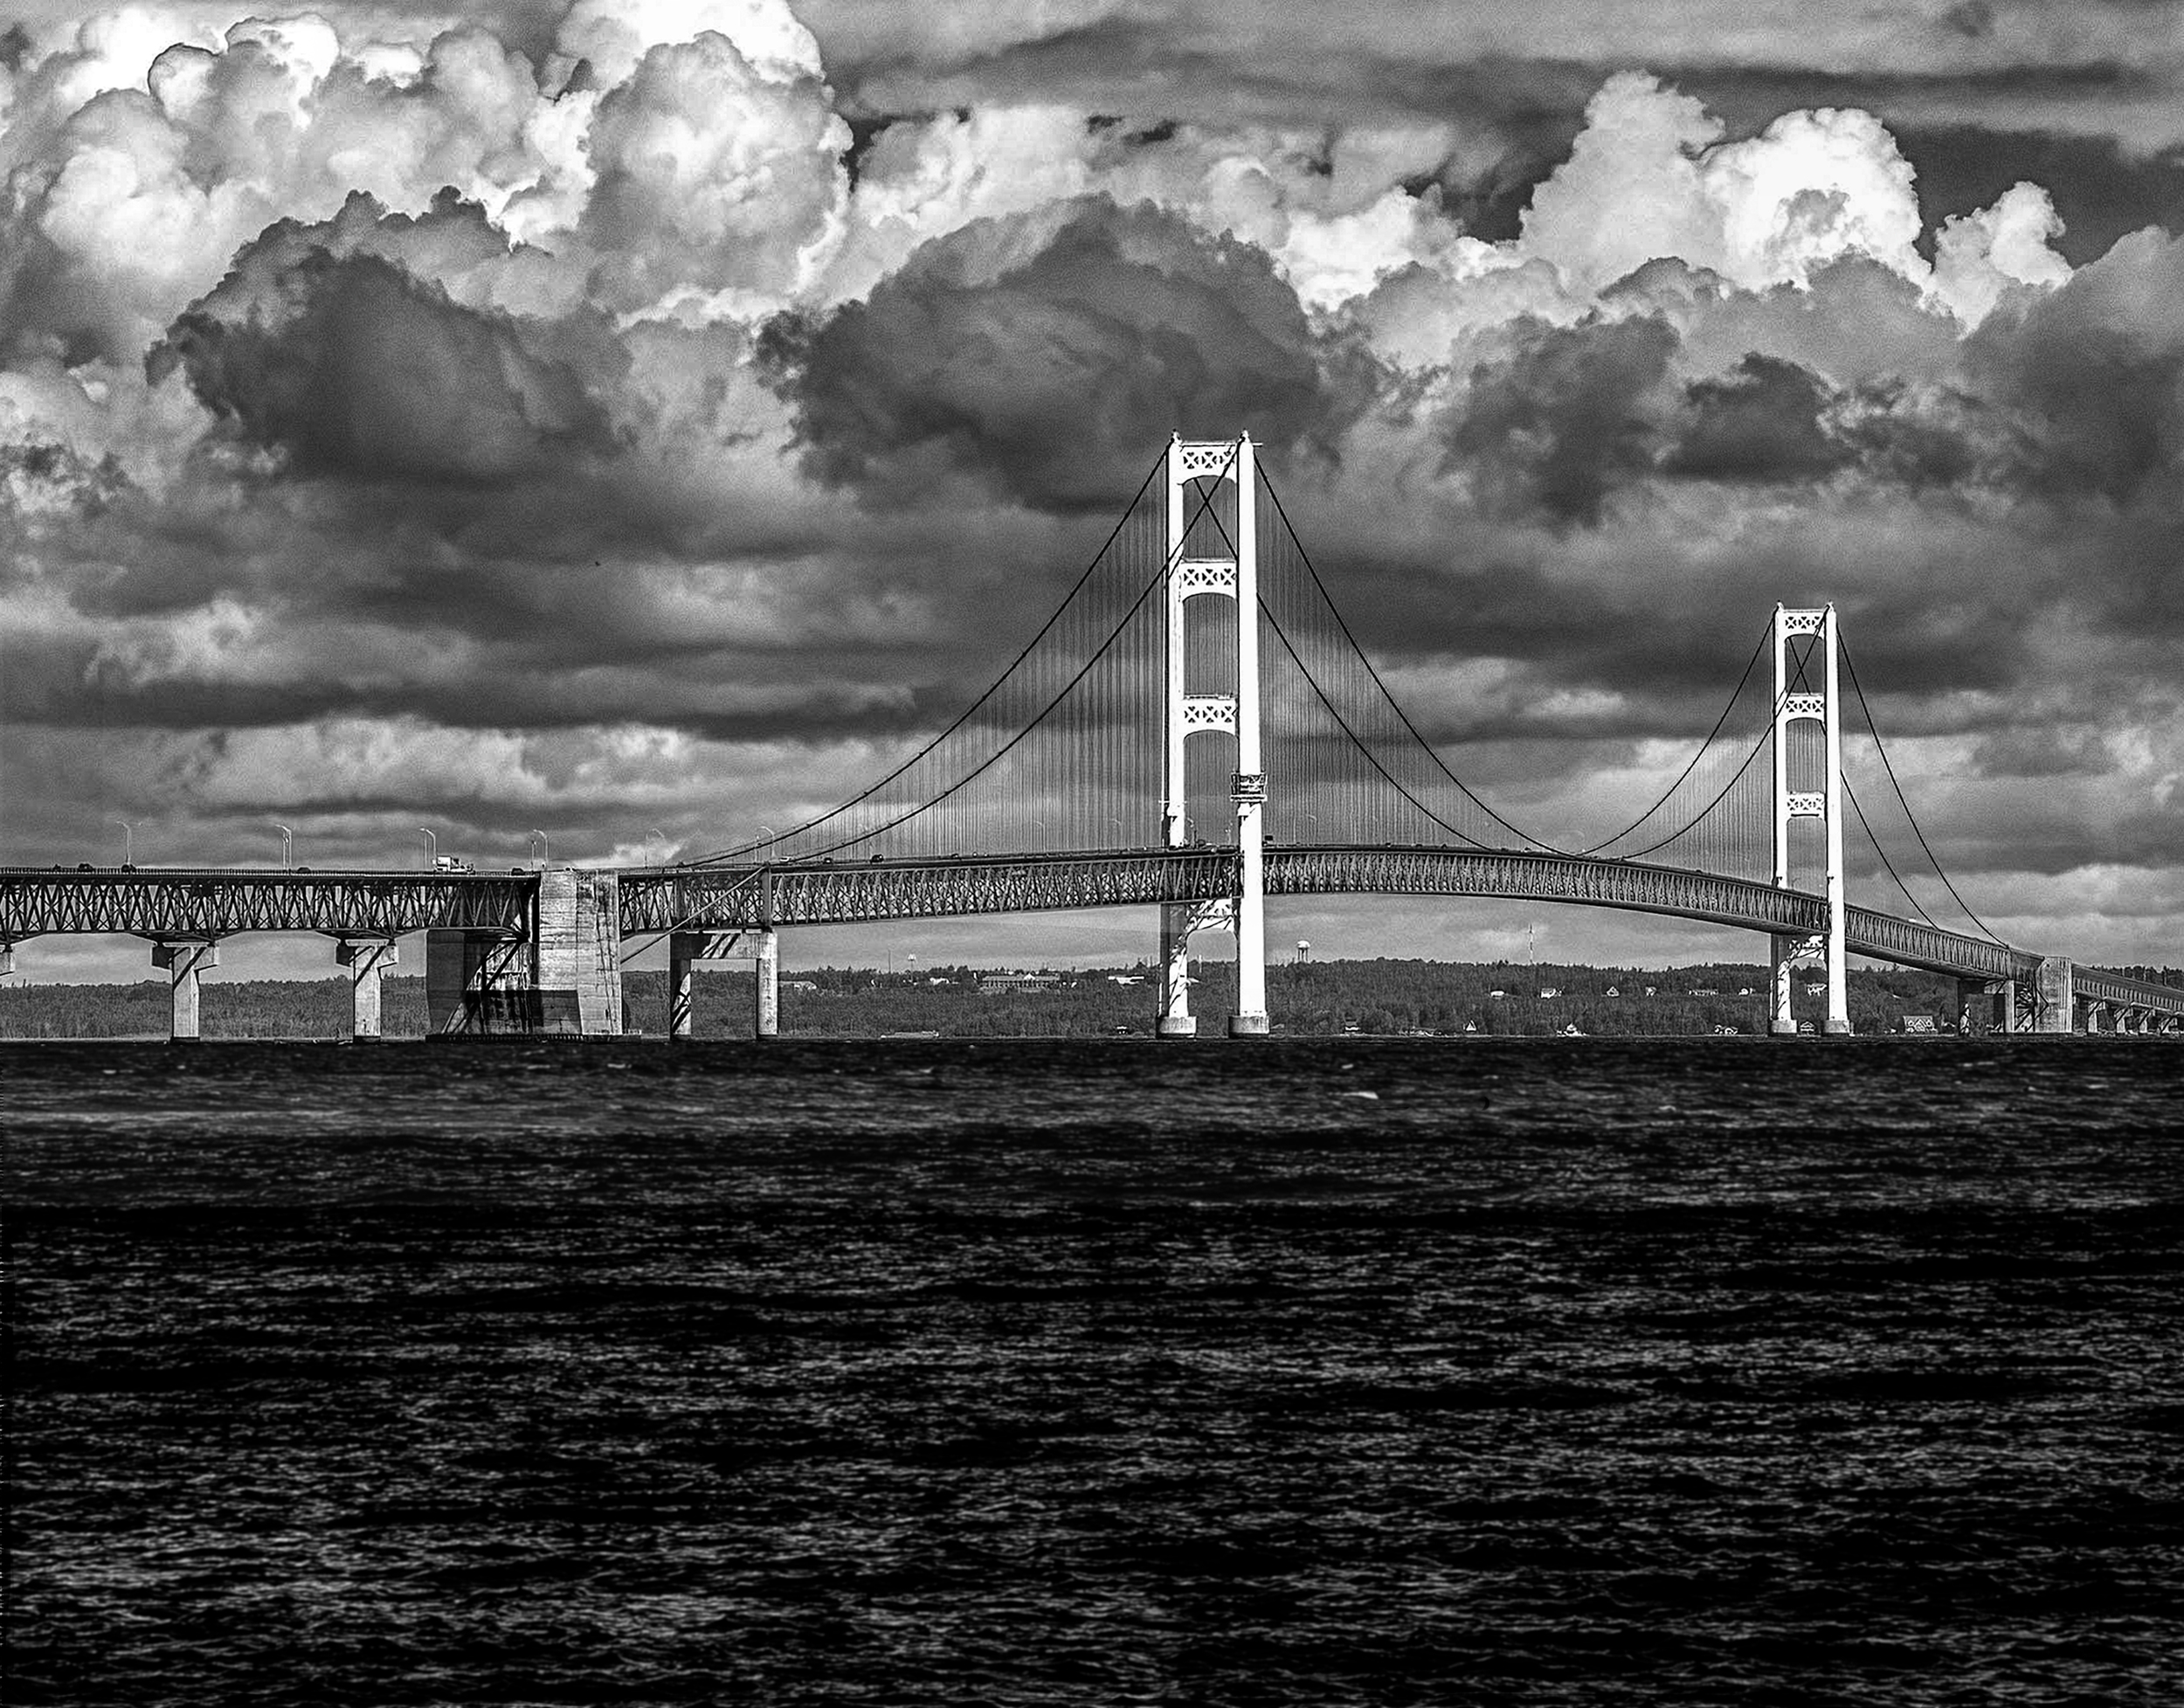 Mackinac Bridge 4 (13.75x10.75)  B&W  NIK HDR (316 of 3850) 2